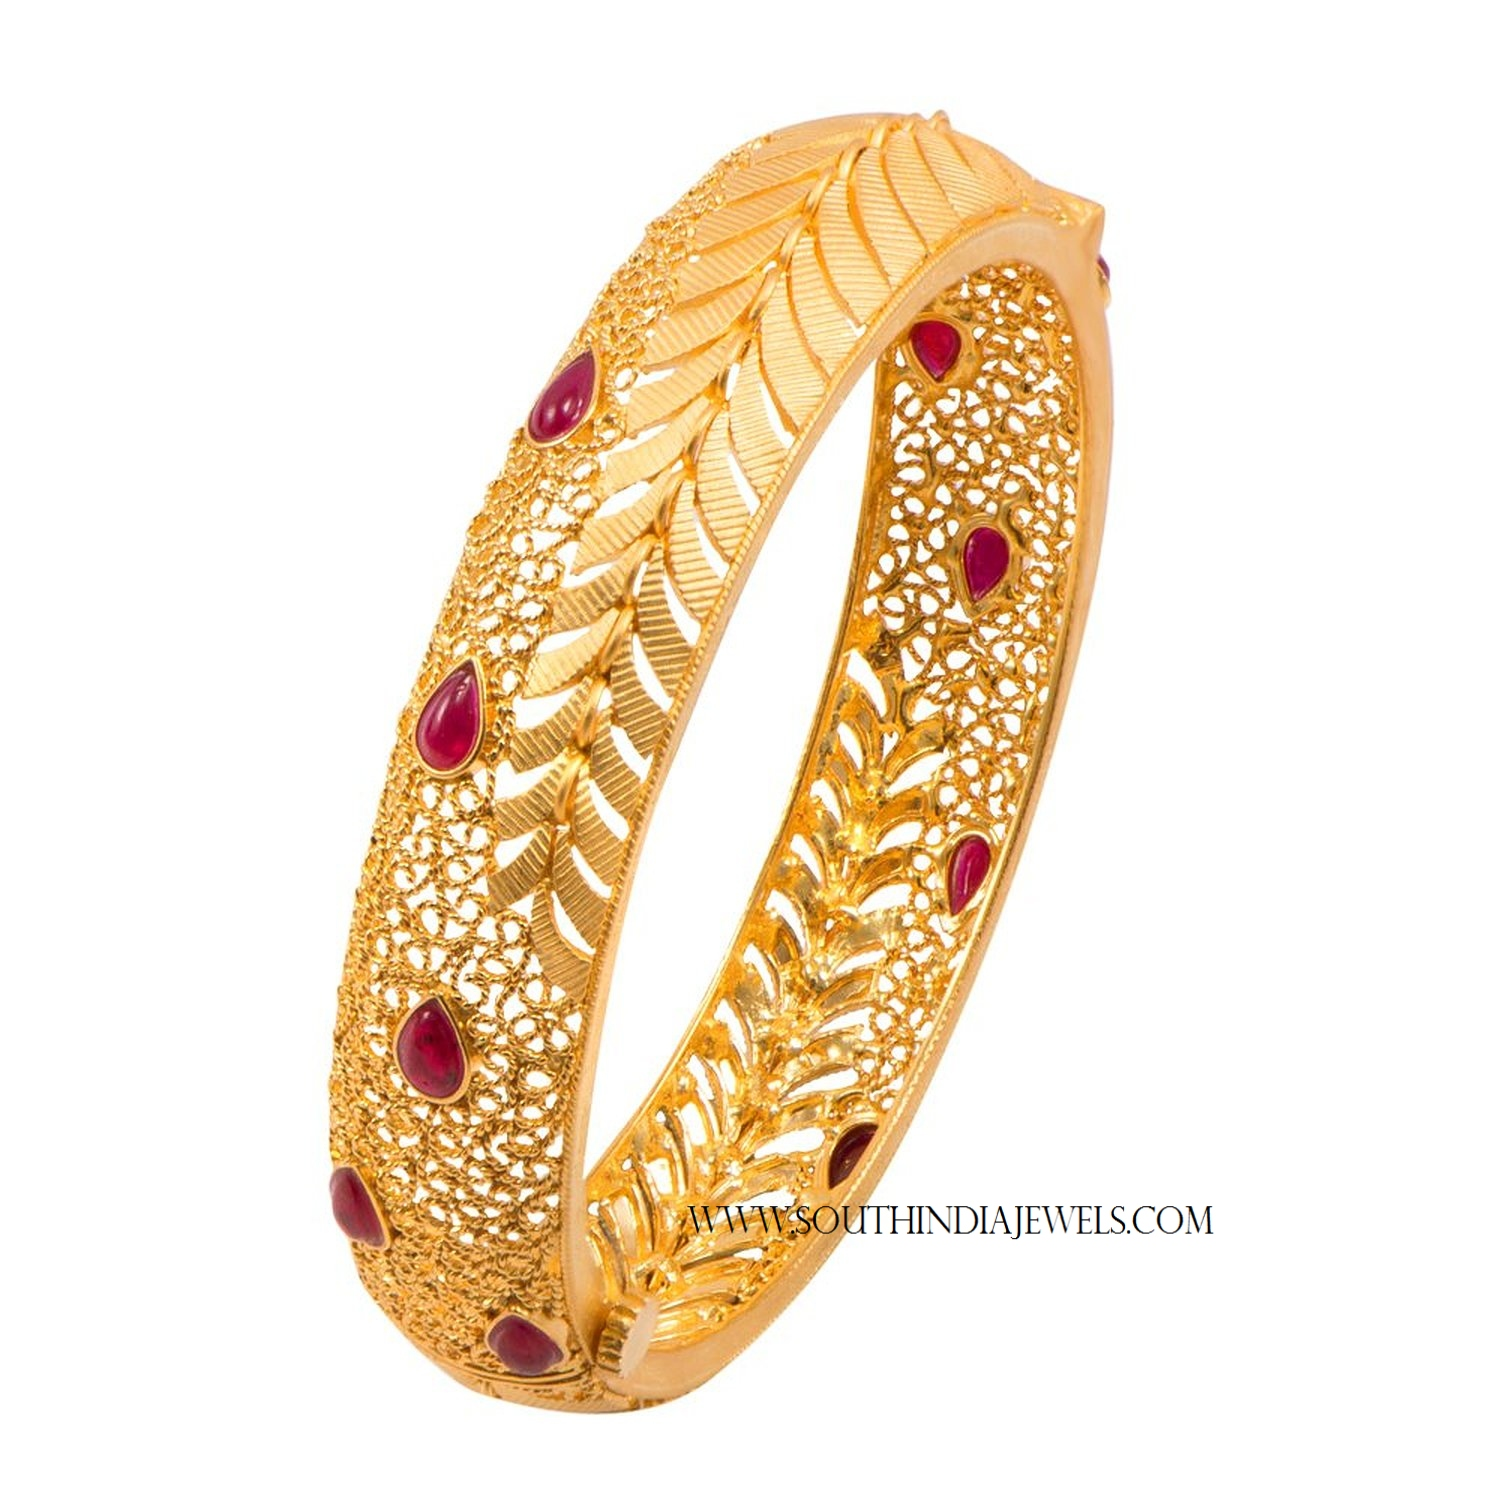 Joy alukkas Gold Bangles Designs With Price ~ South India Jewels